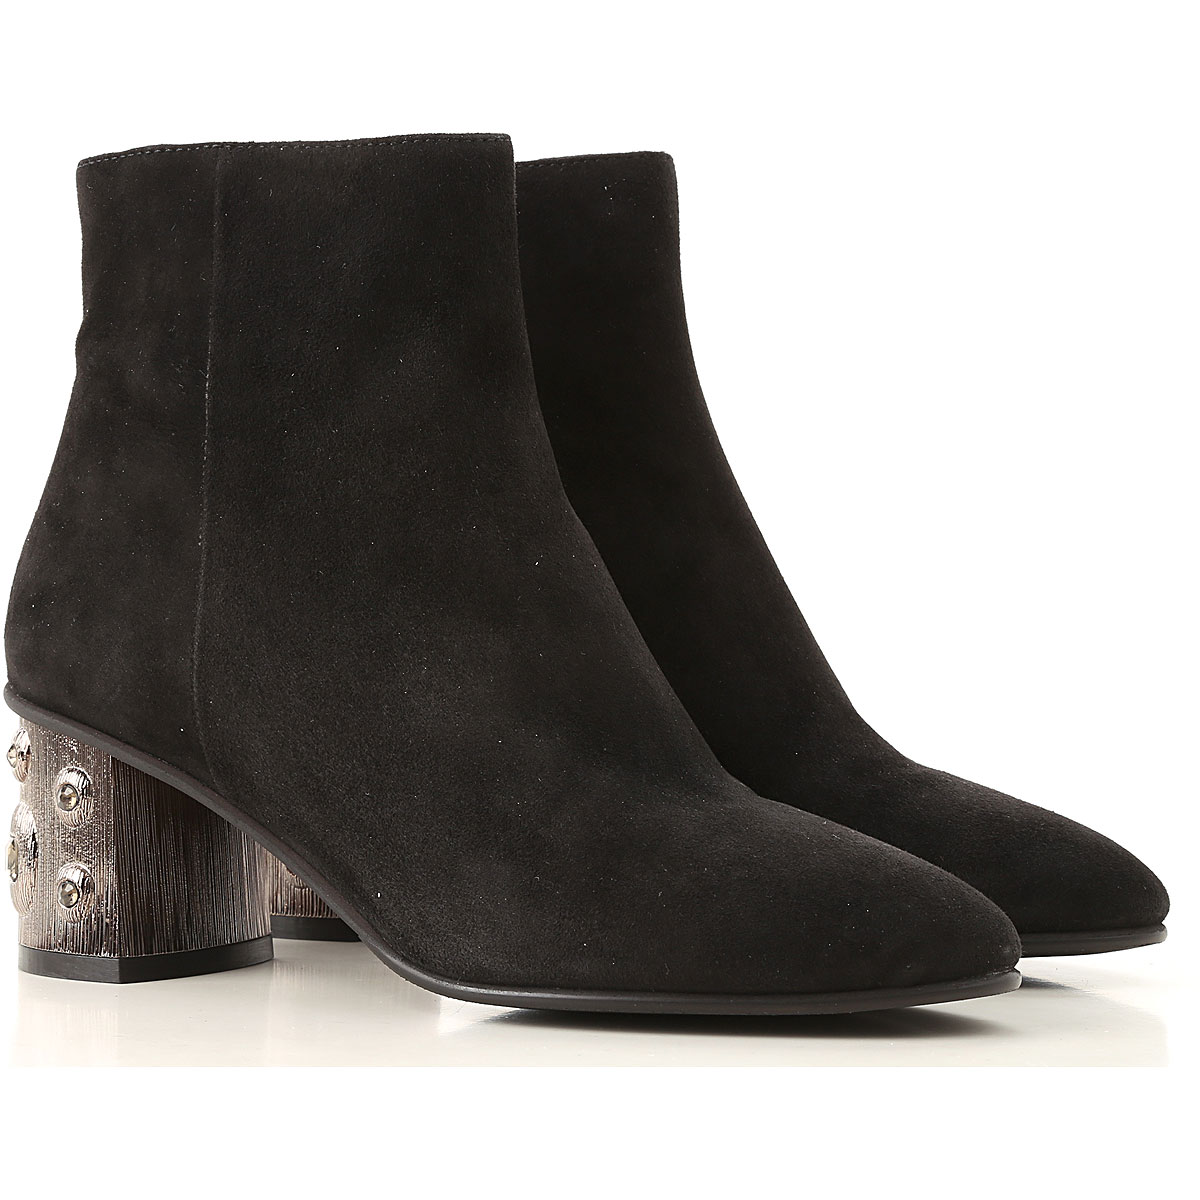 Elvio Zanon Boots for Women Booties On Sale in Outlet USA - GOOFASH